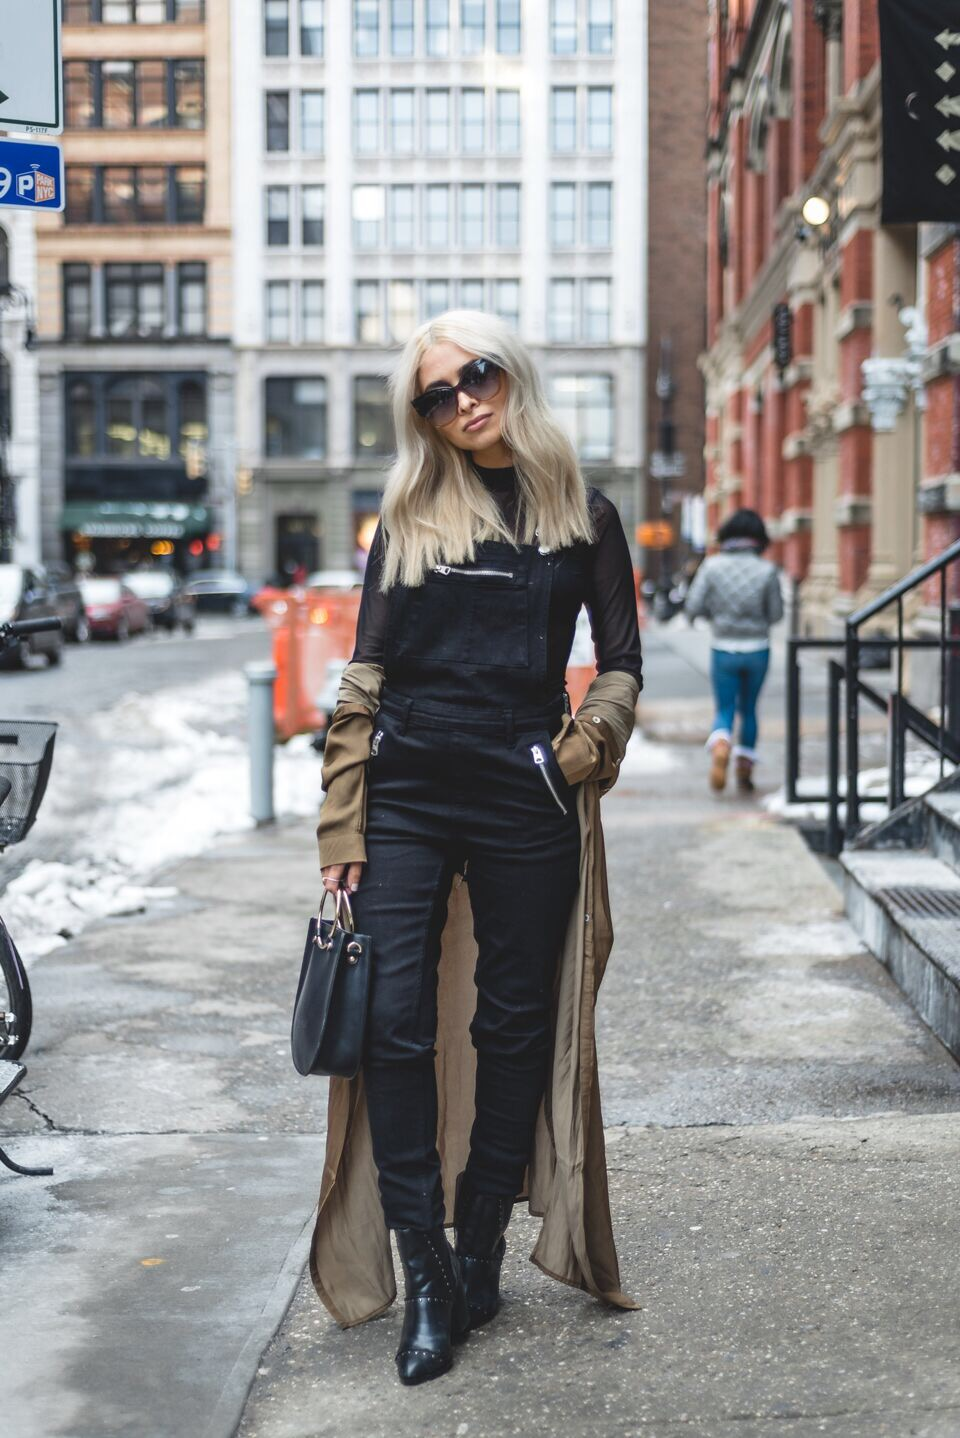 nyfw_streetstyle_nyfw streetstyle_nyfw bloggers_blonde blogger_icy blonde hair_black overalls_sheer black top_lulus_tom ford sunglasses_soho nyc